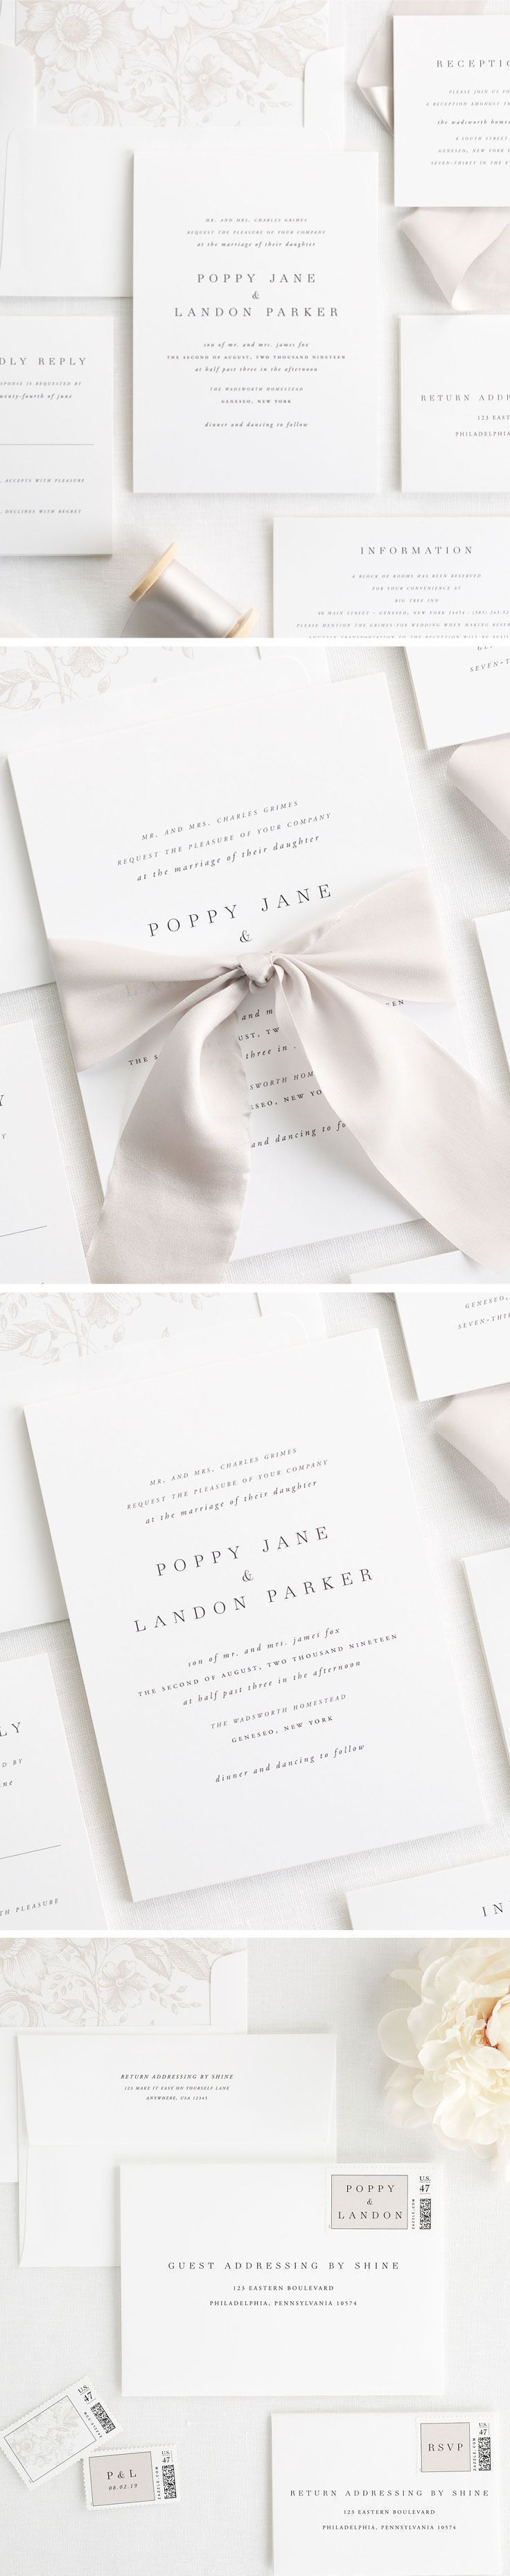 20647 Best Member Board Stationery Calligraphy Images On